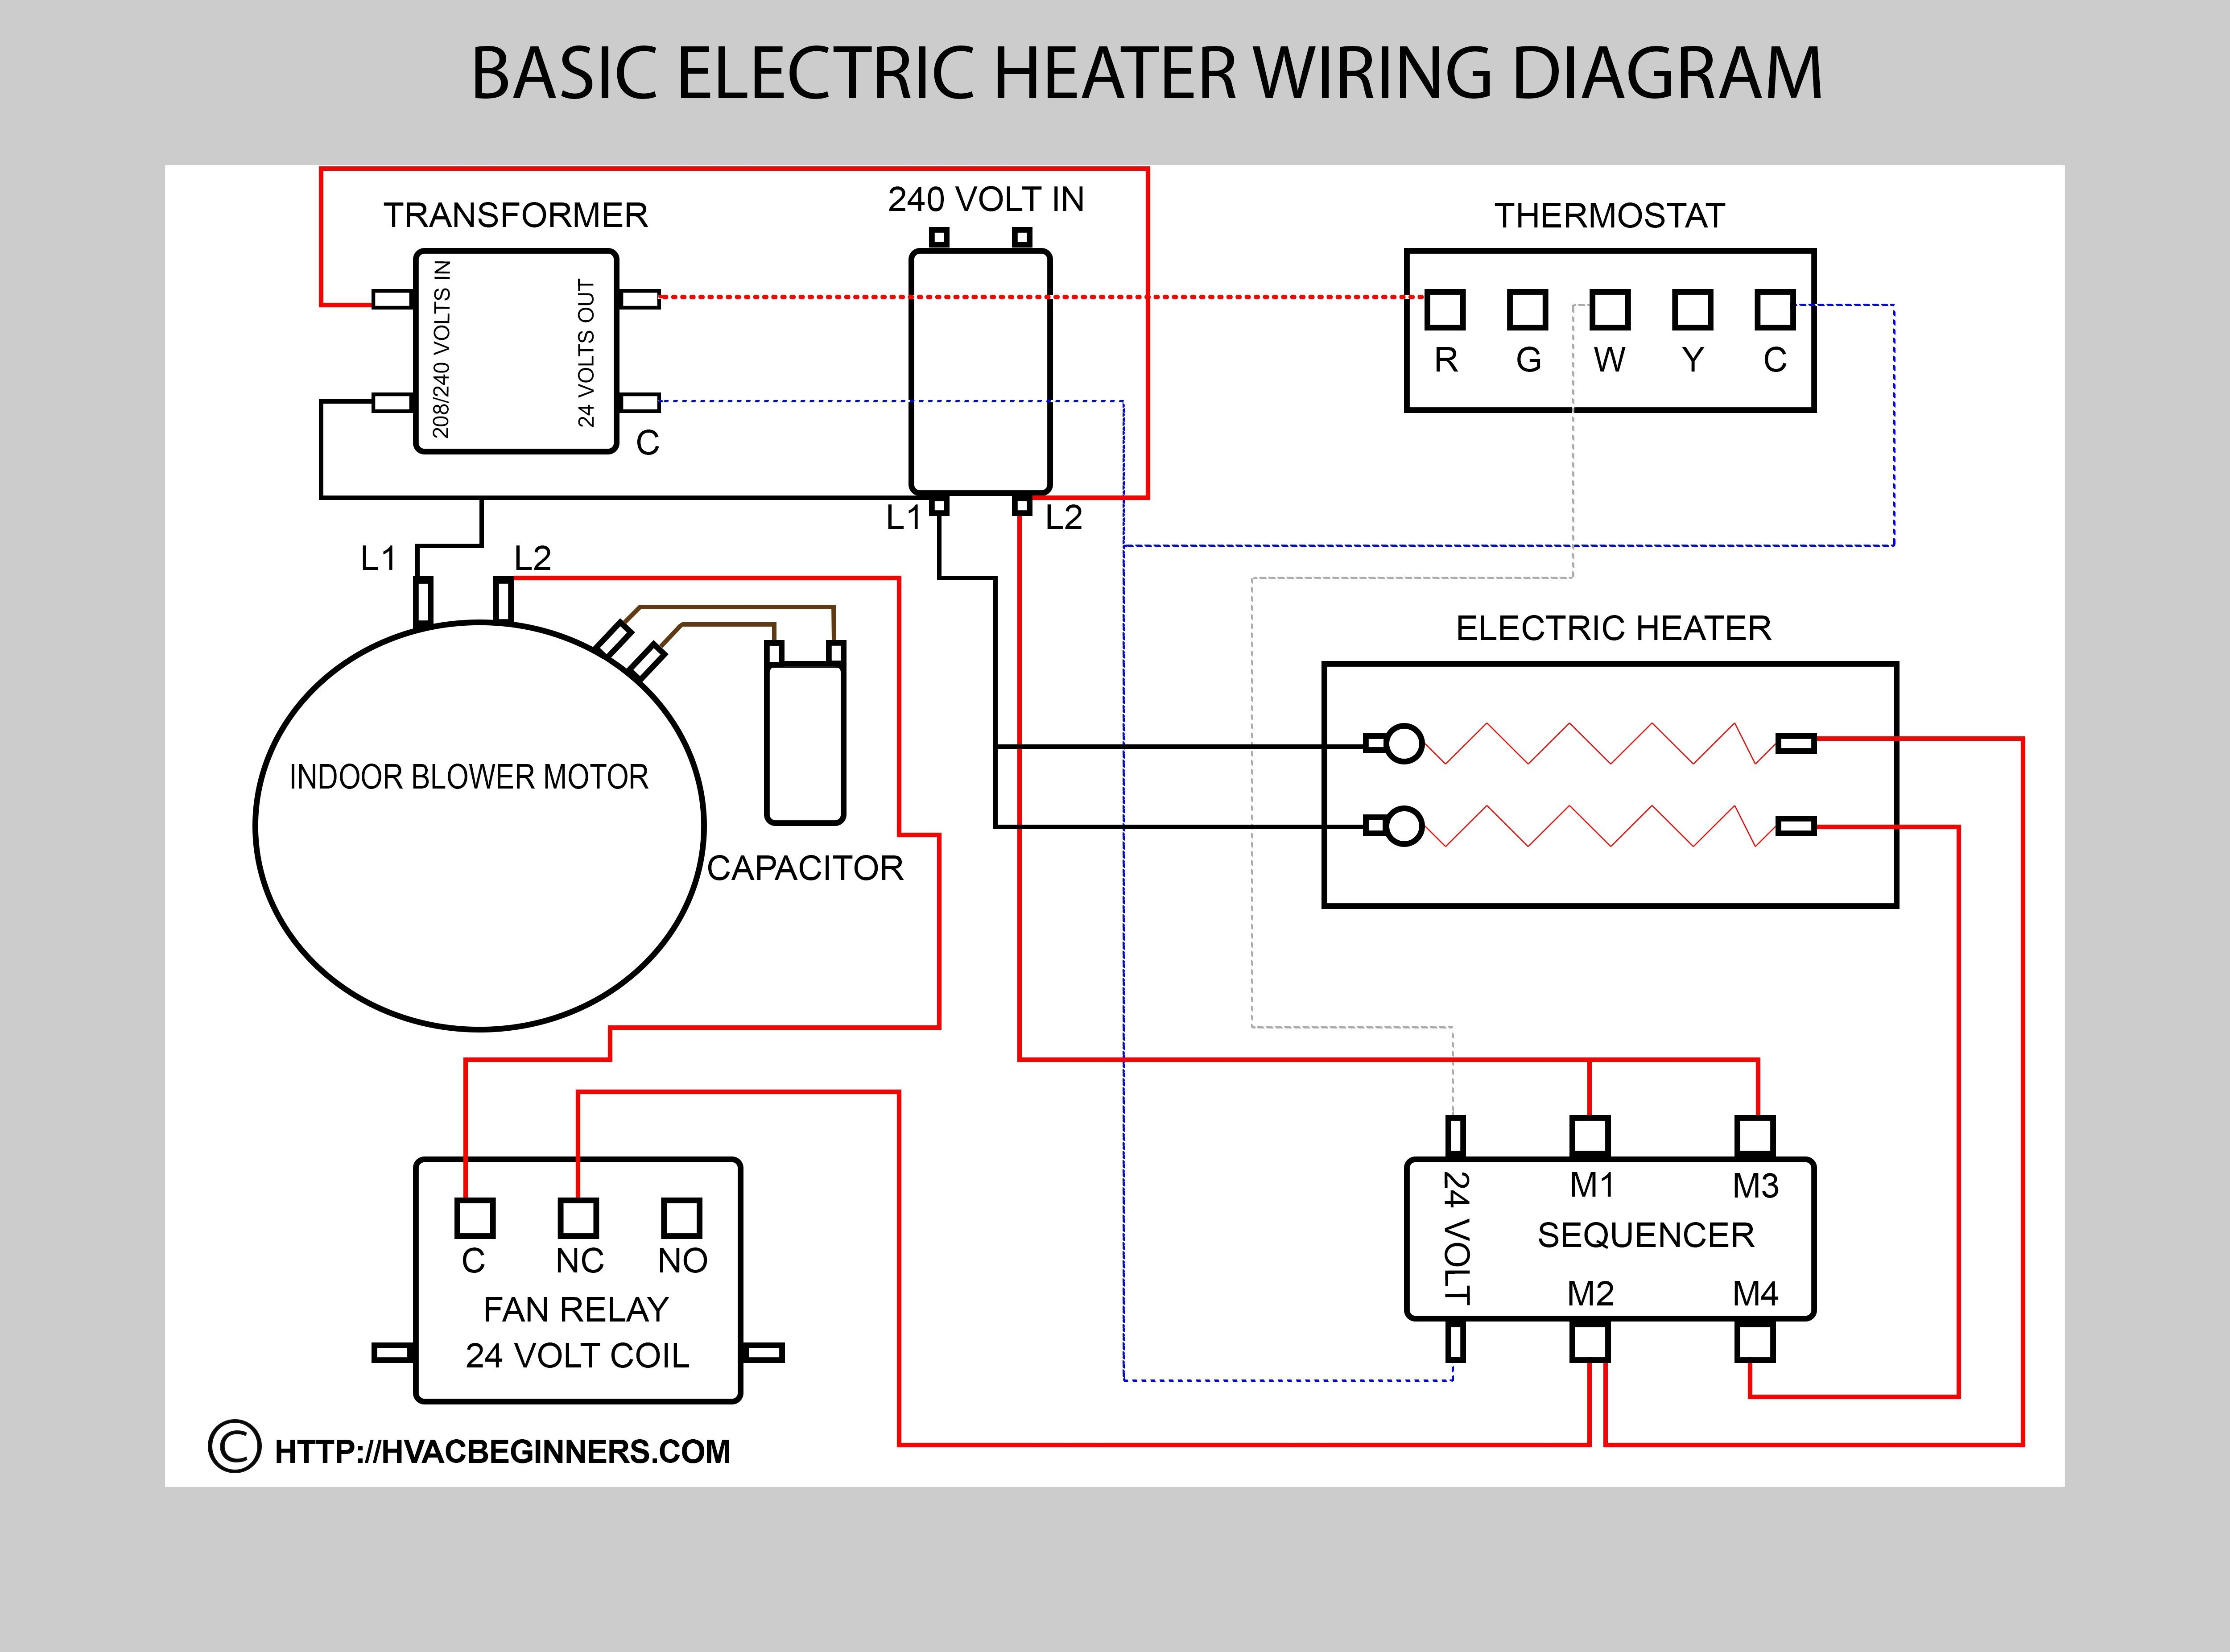 Auto Aircon Diagram Basic Air Conditioning Wiring Diagram